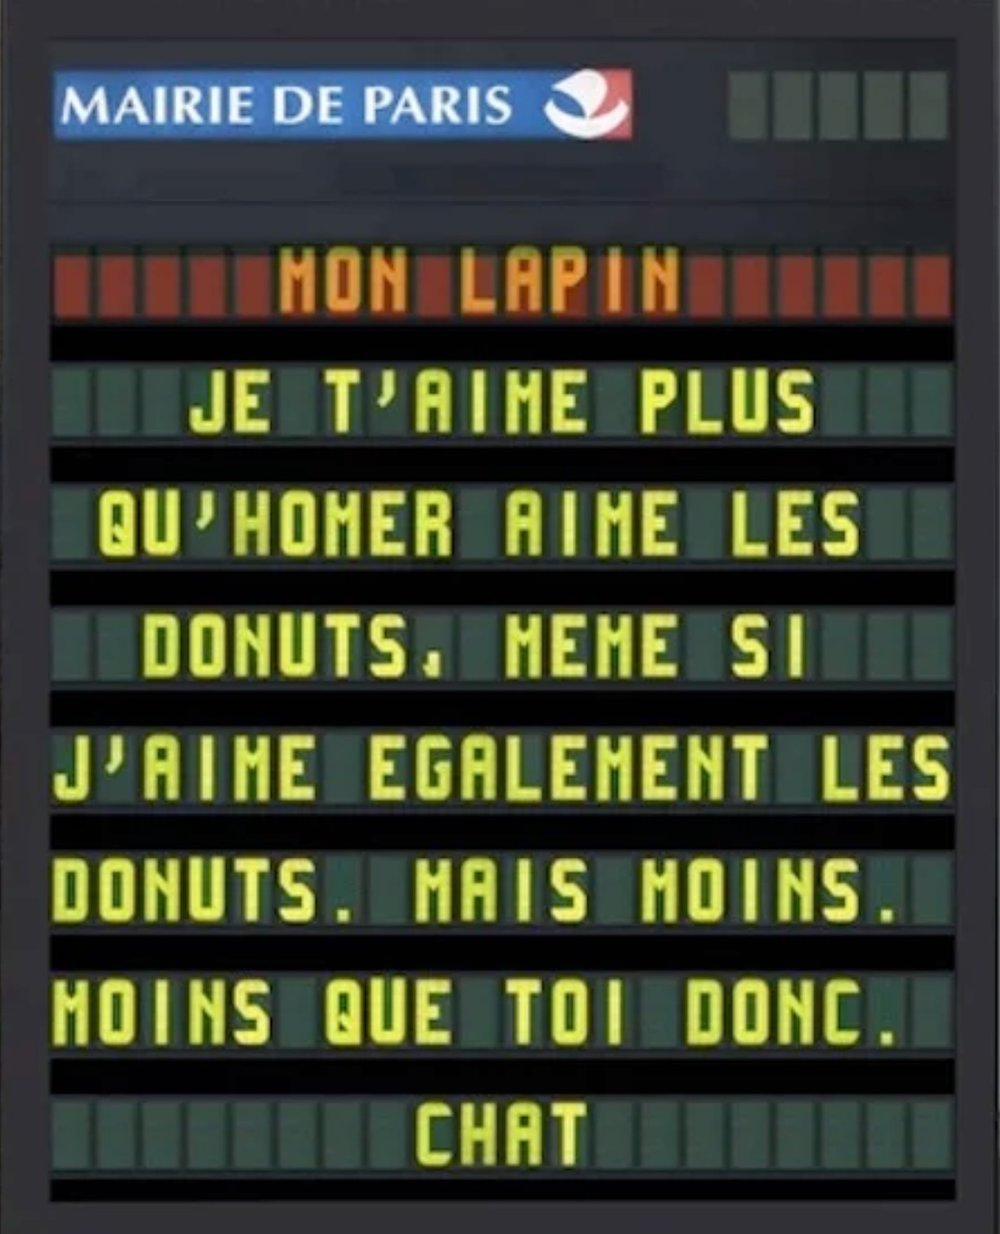 Official panel from Paris City Hall that is loosely translated: I love you more than Homer [Simpson] loves donuts. Even though I love donuts too, I love them less than you.